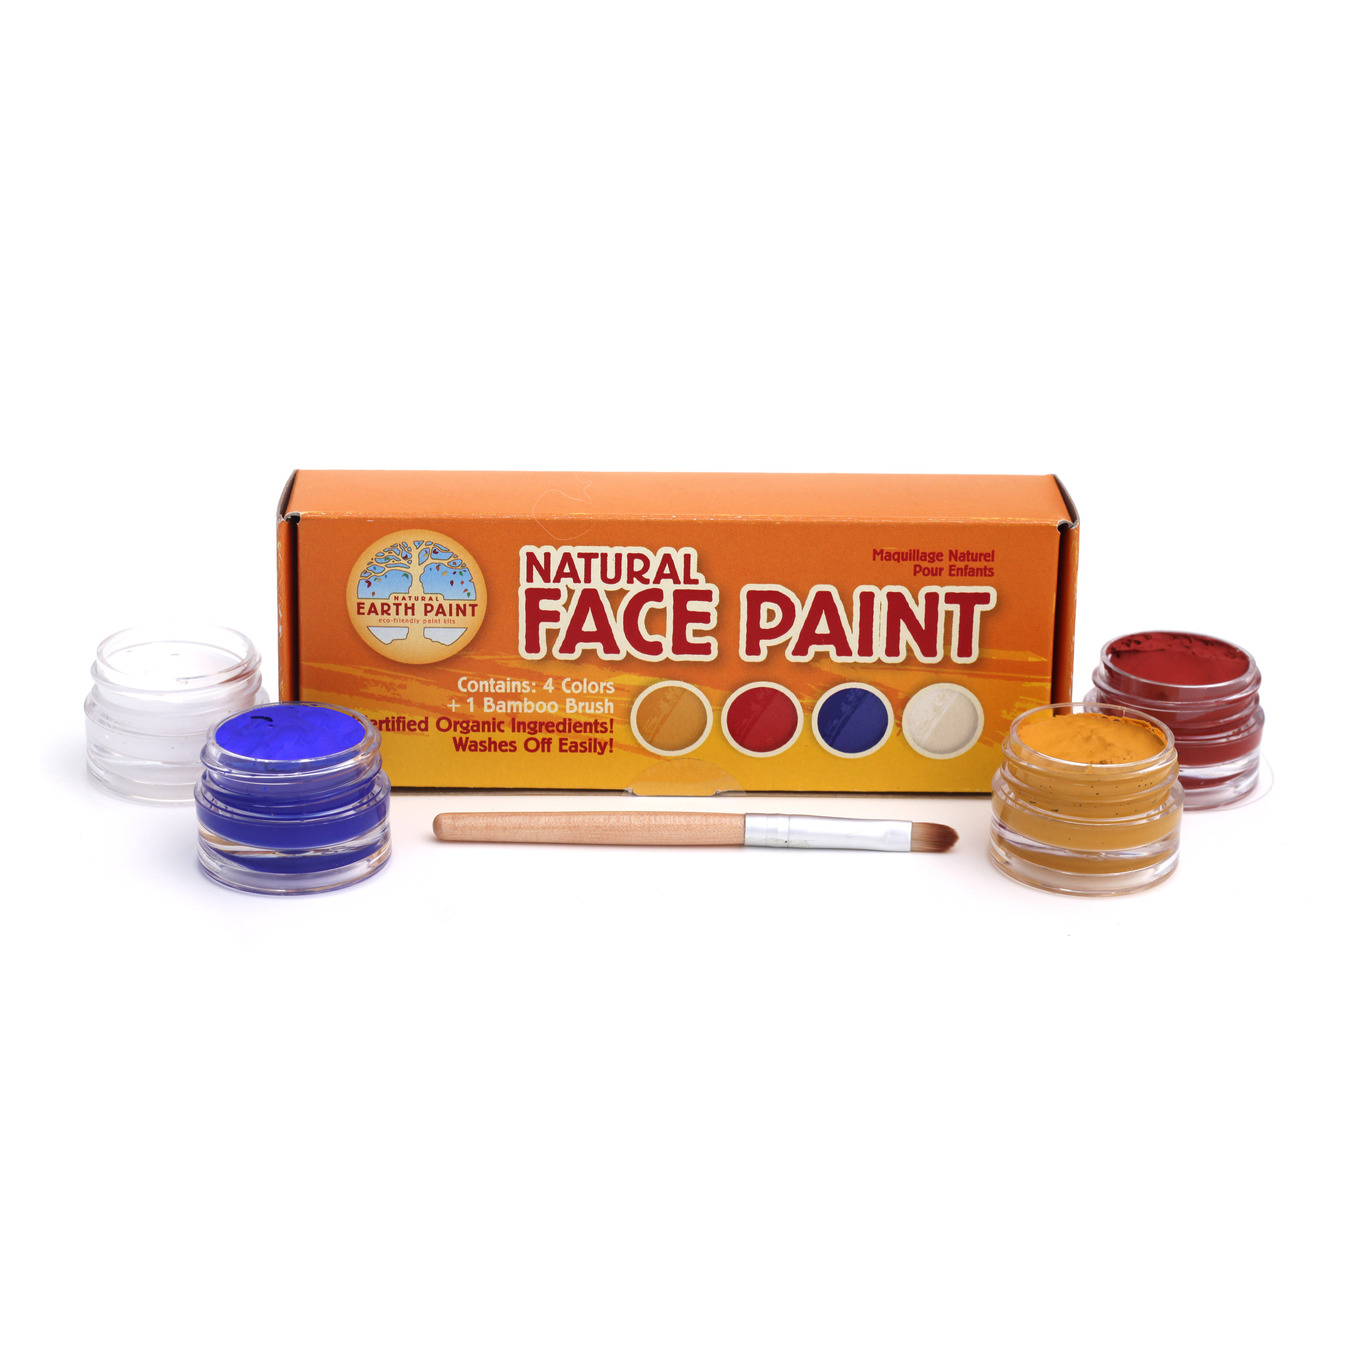 Natural Earth Face Paint set of 4